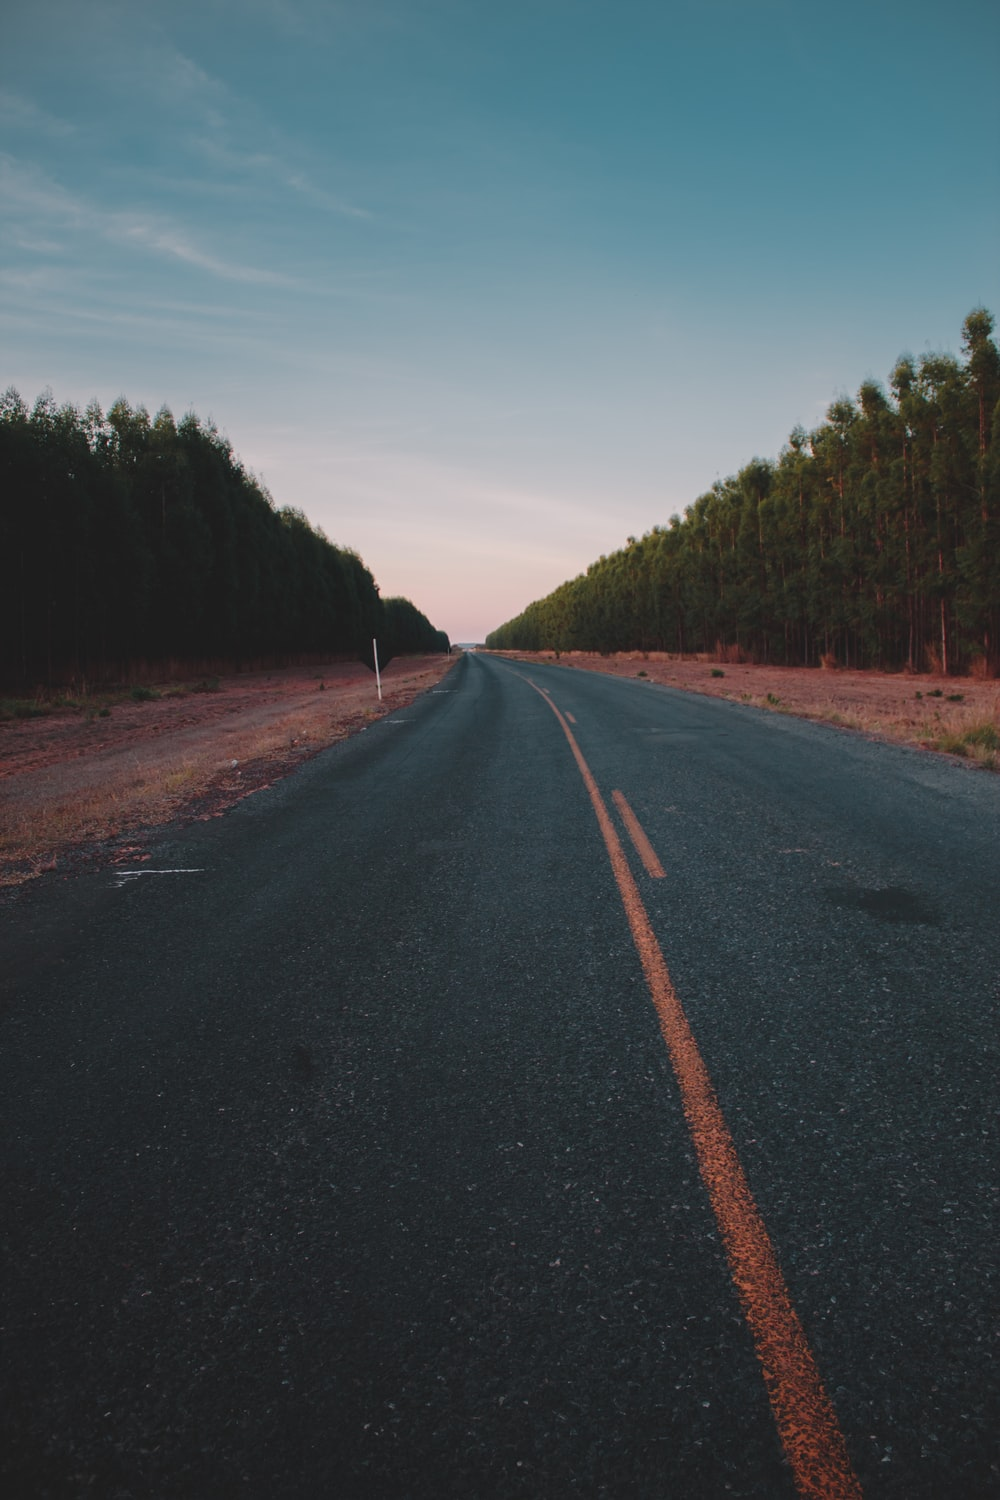 photography of empty road during daytime